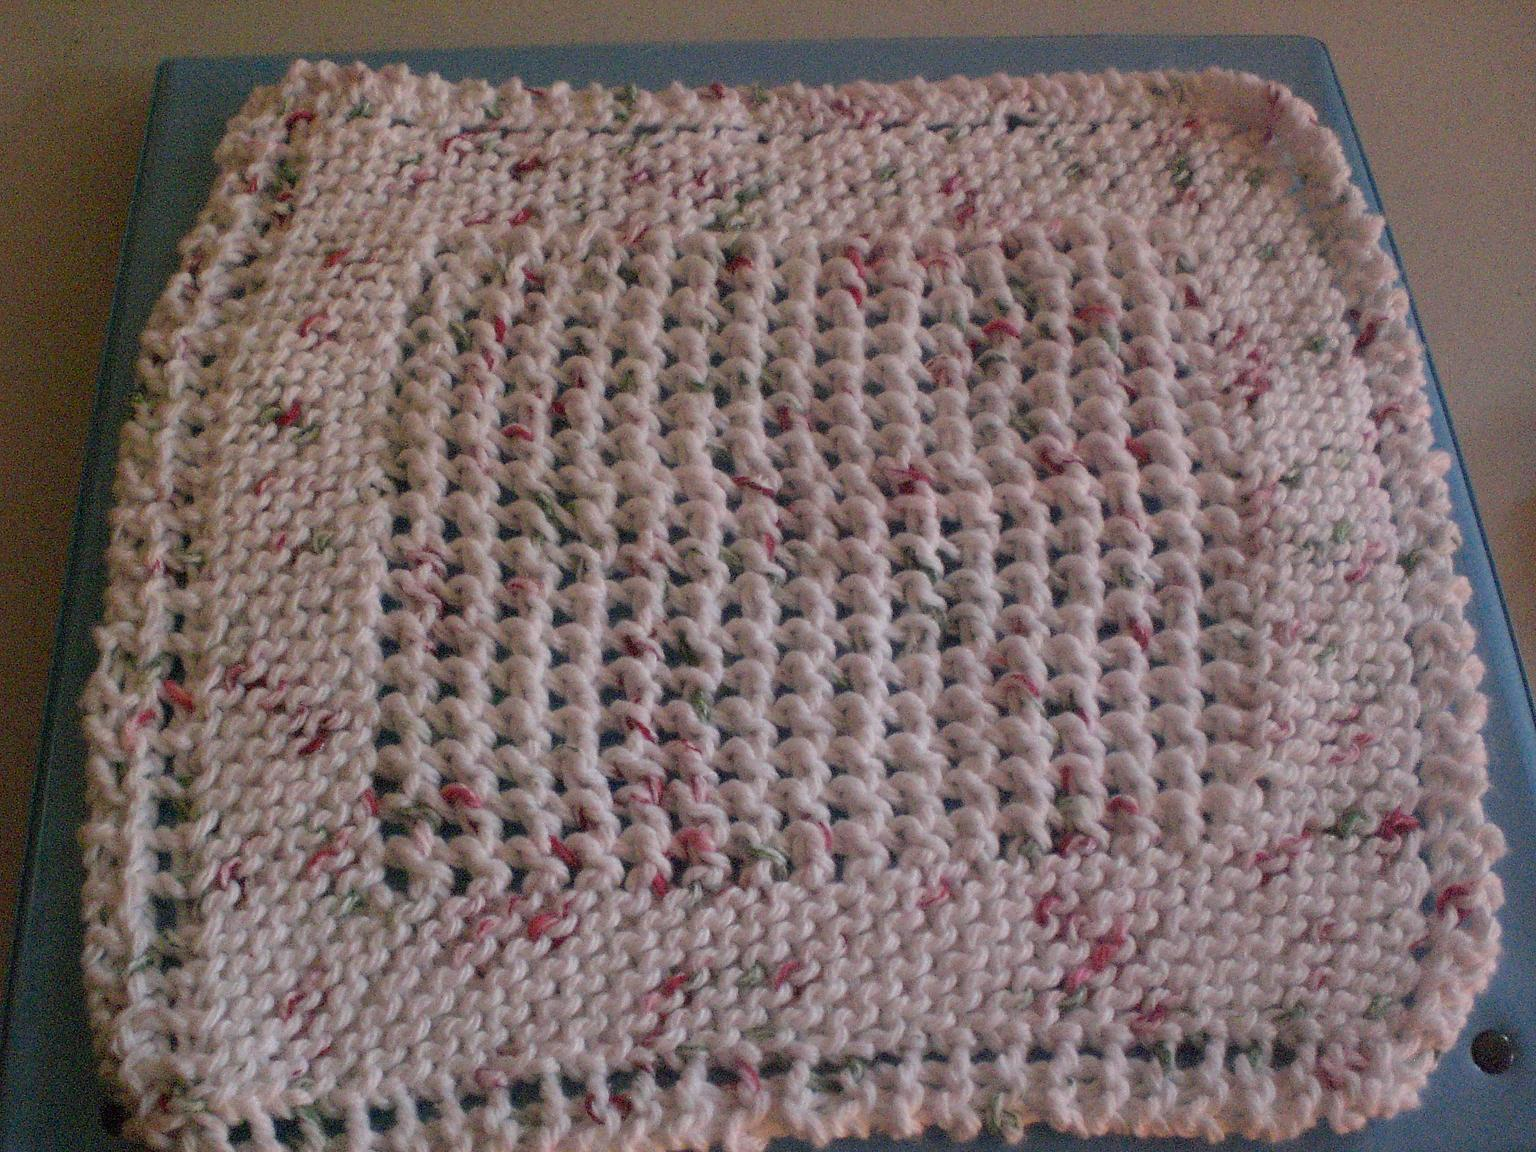 Cotton Knitted Dishcloth Pattern : Luvsknitting: A Little Bit More of Christmas Knitting